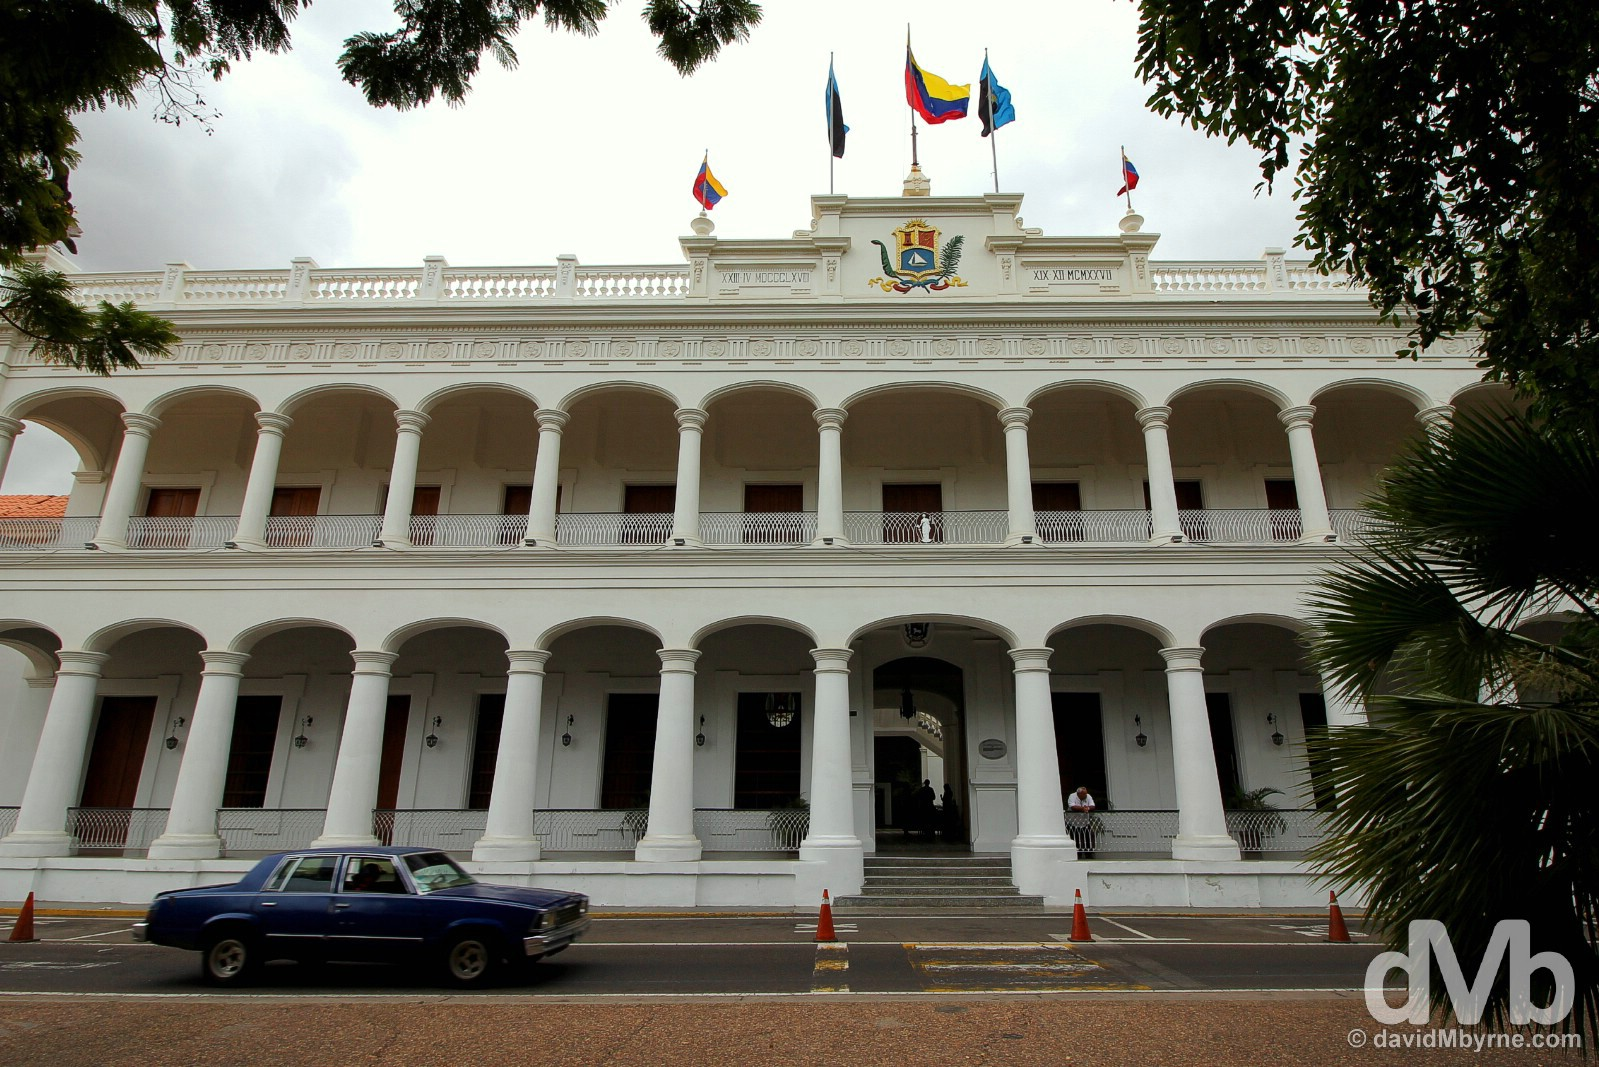 Government Palace in Plaza Bolivar, Maracaibo, Venezuela. June 22, 2015.